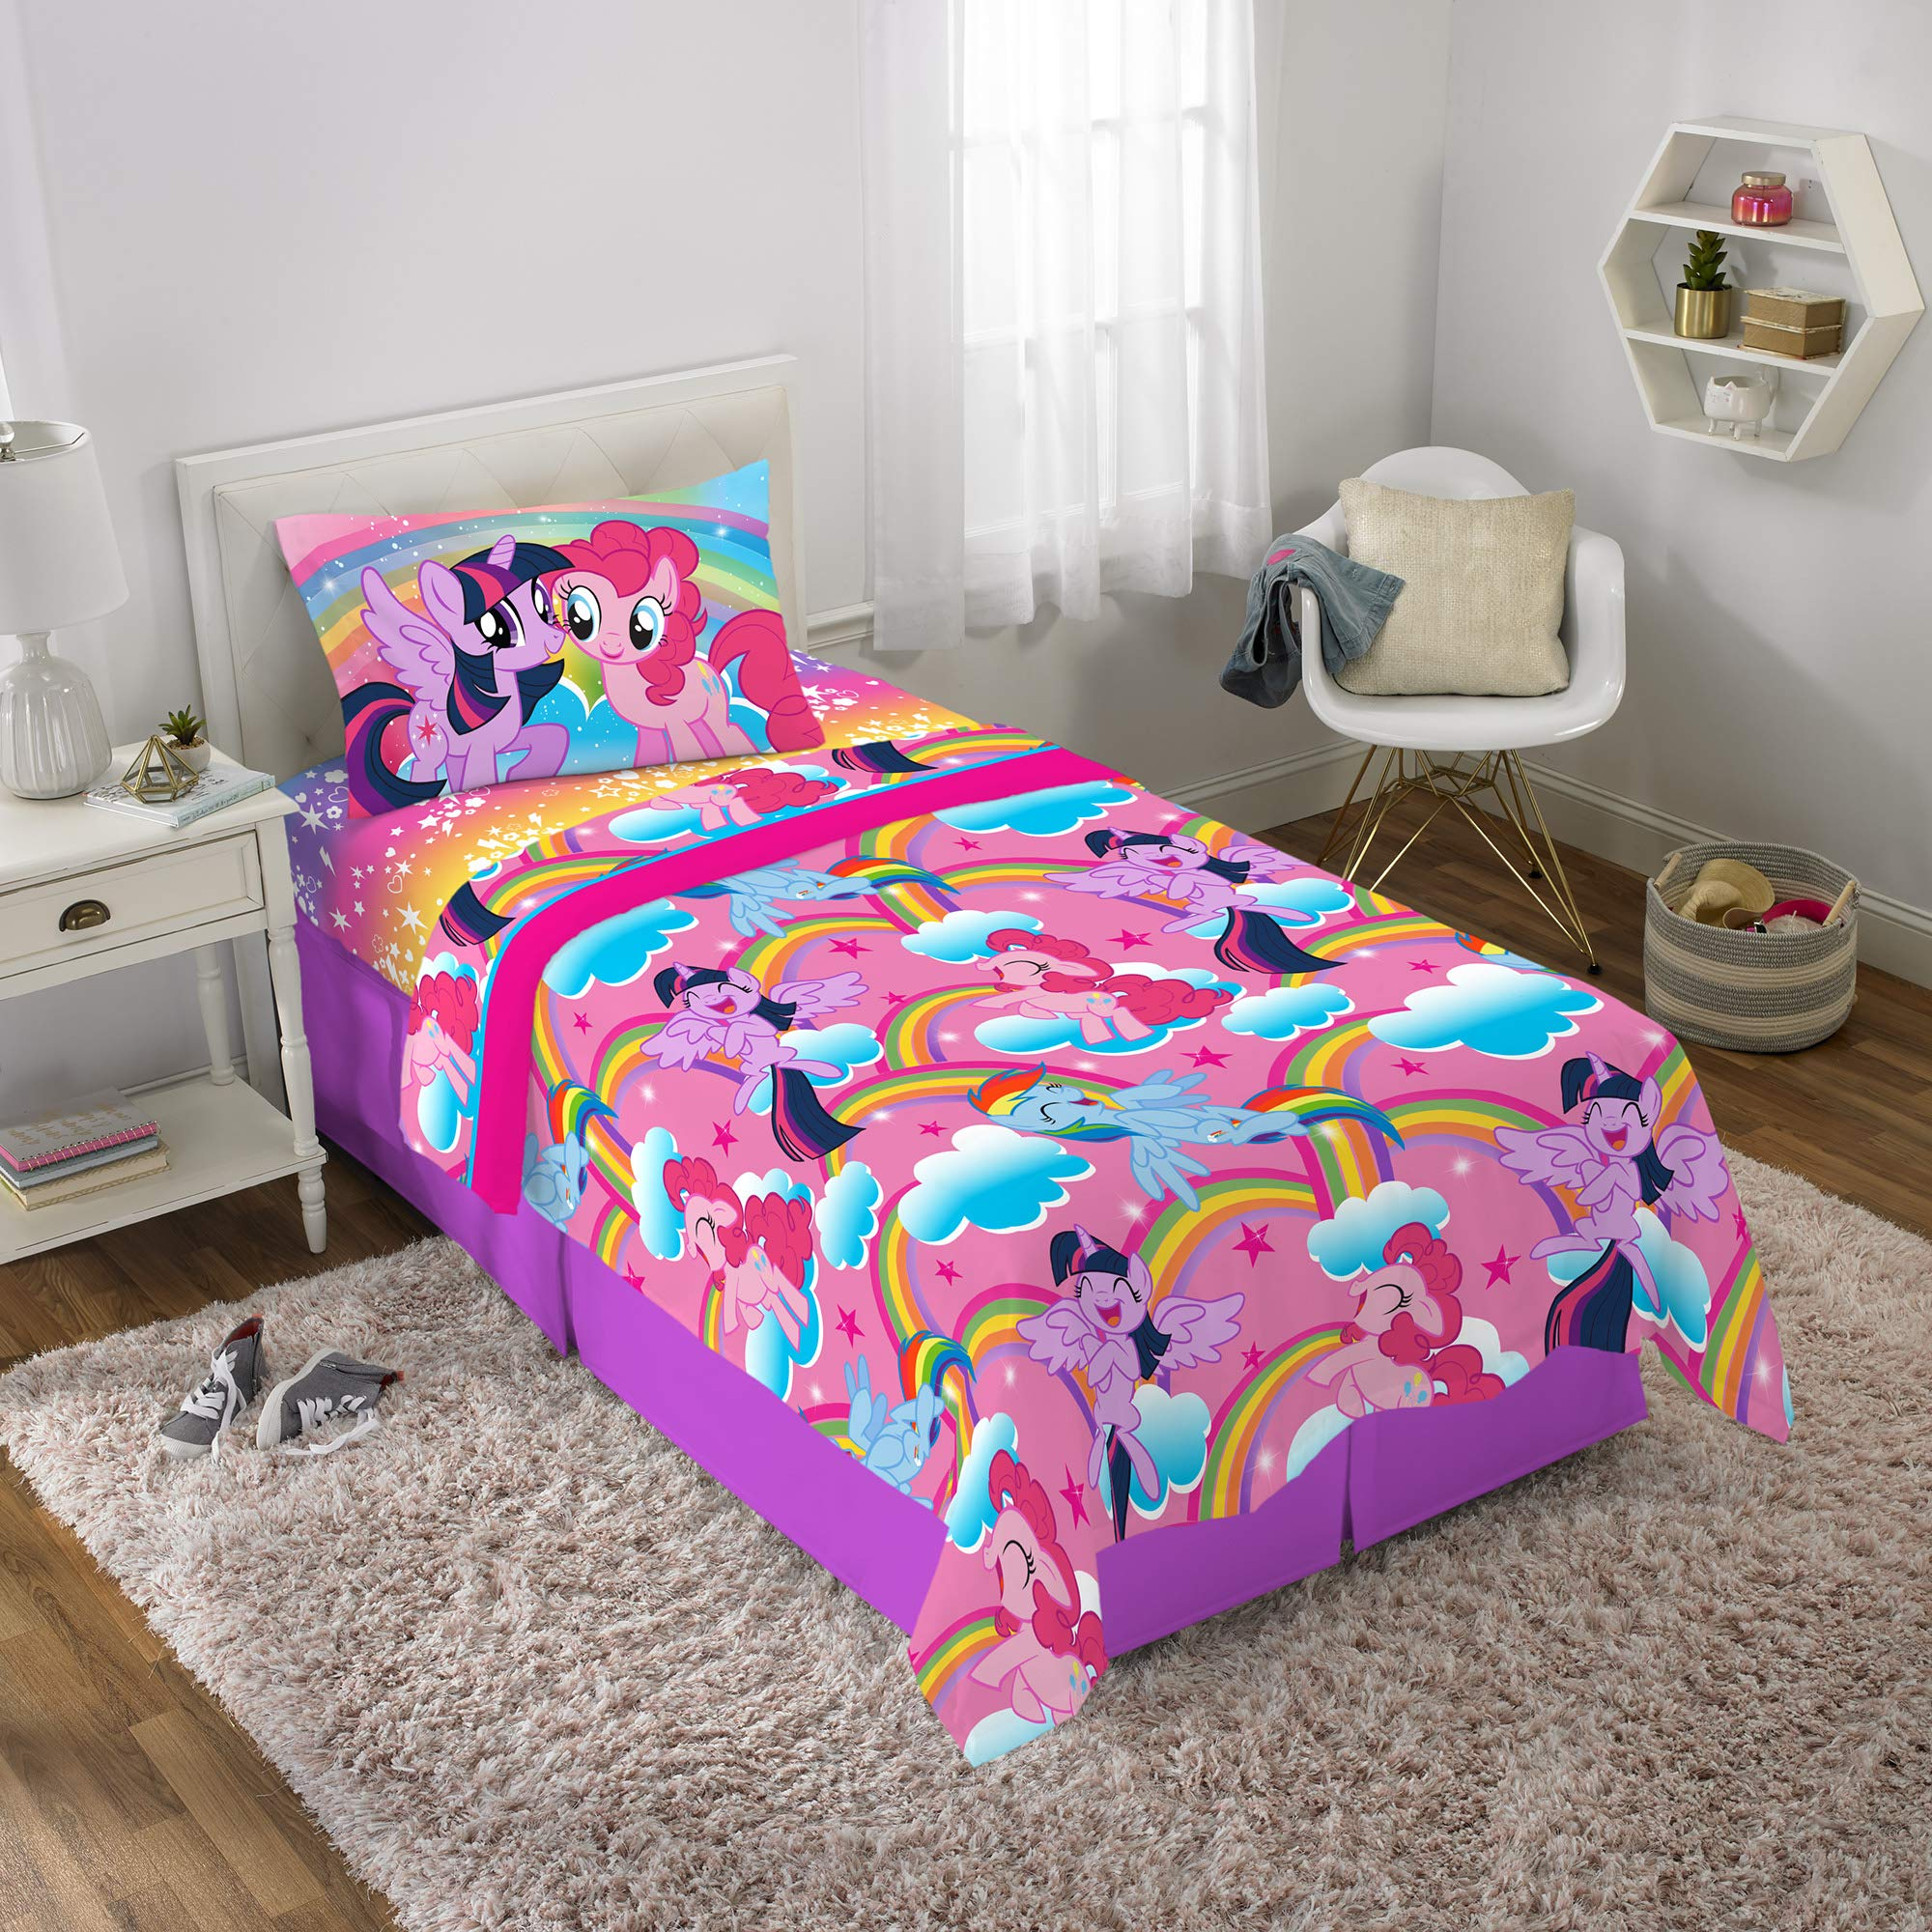 Franco Kids Bedding Super Soft Microfiber Sheet Set, 3 Piece Twin Size, Hasbro My Little Pony by Franco (Image #2)